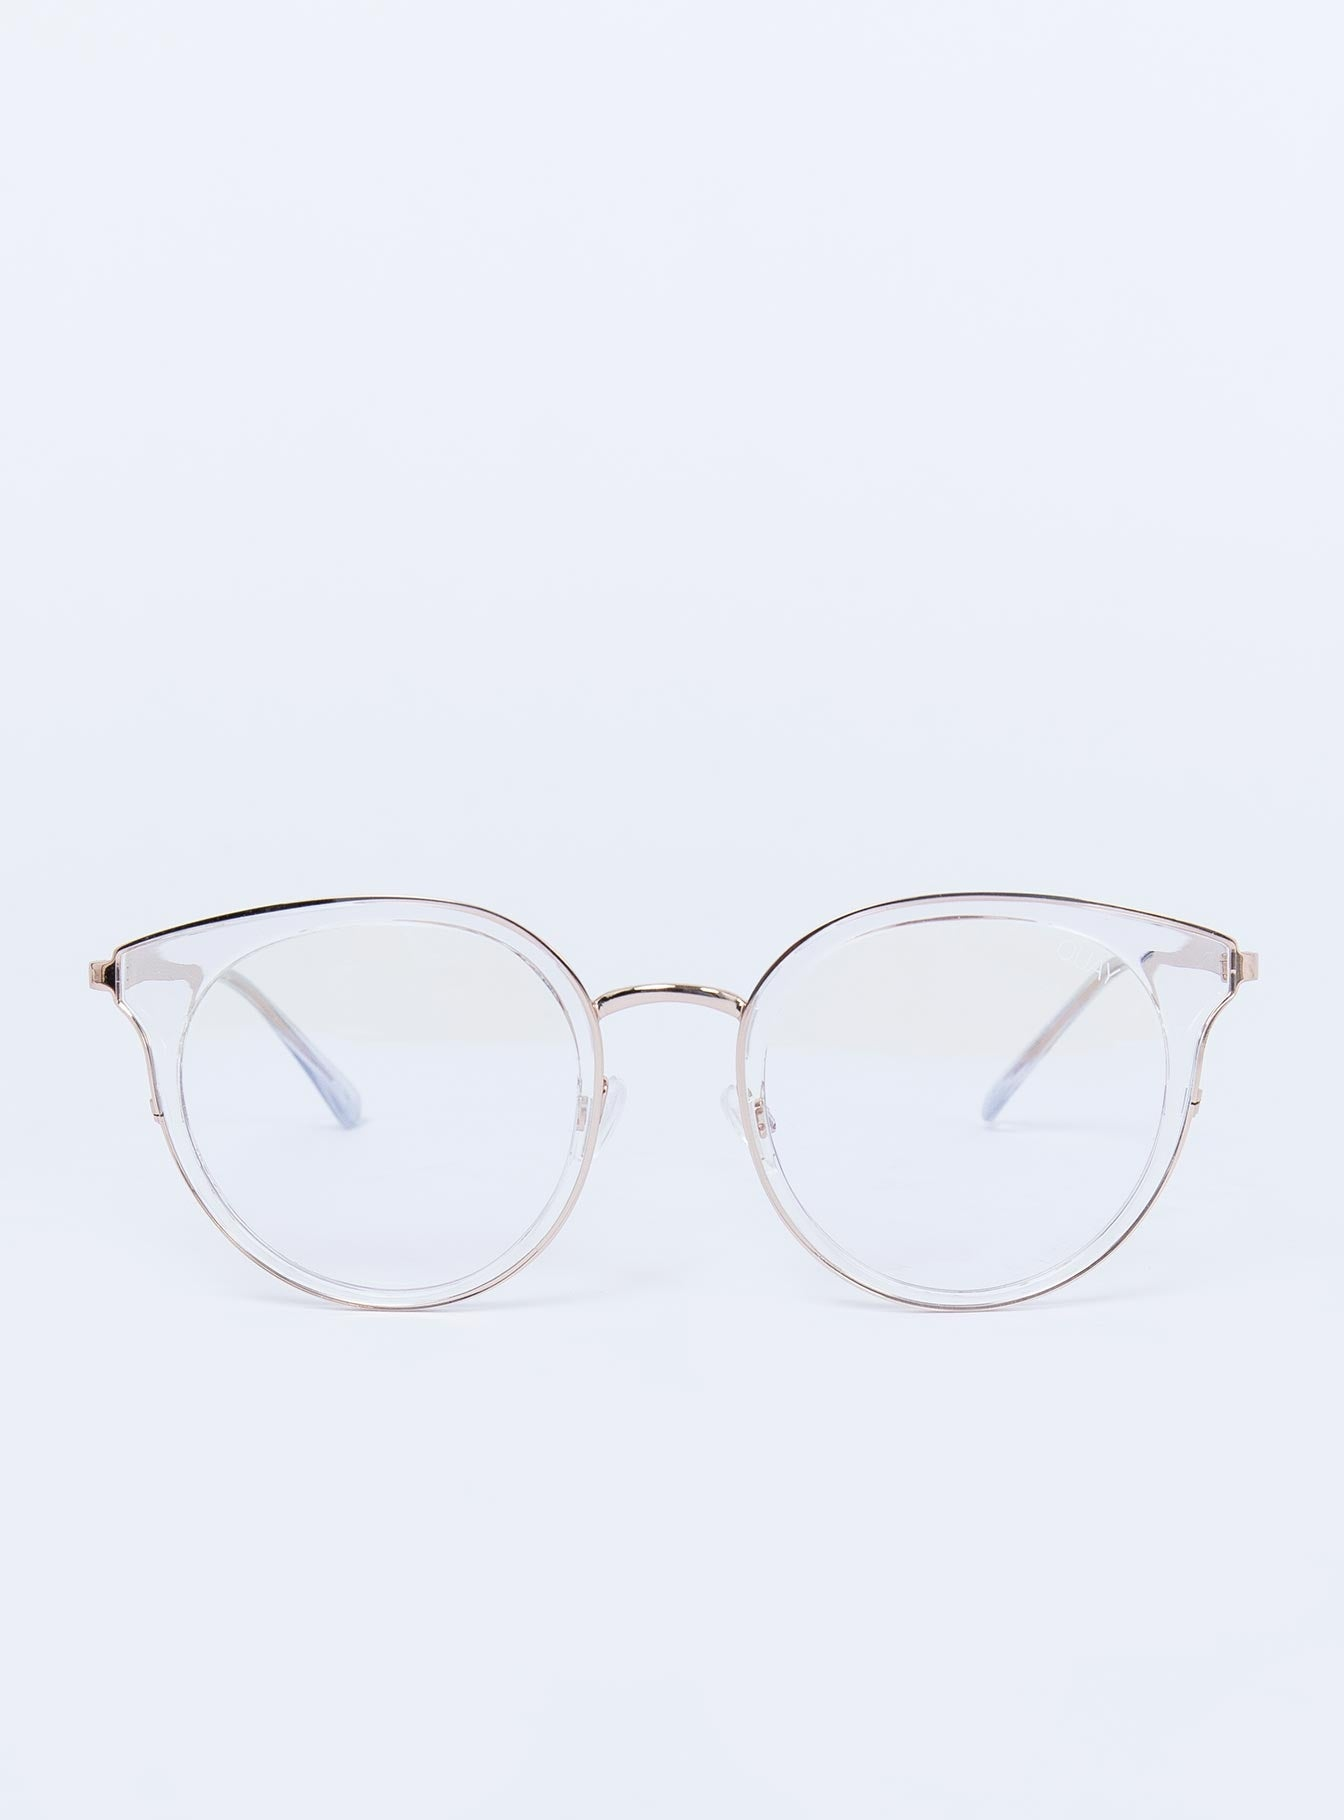 Quay Australia Blue Light Glasses Cryptic Clear